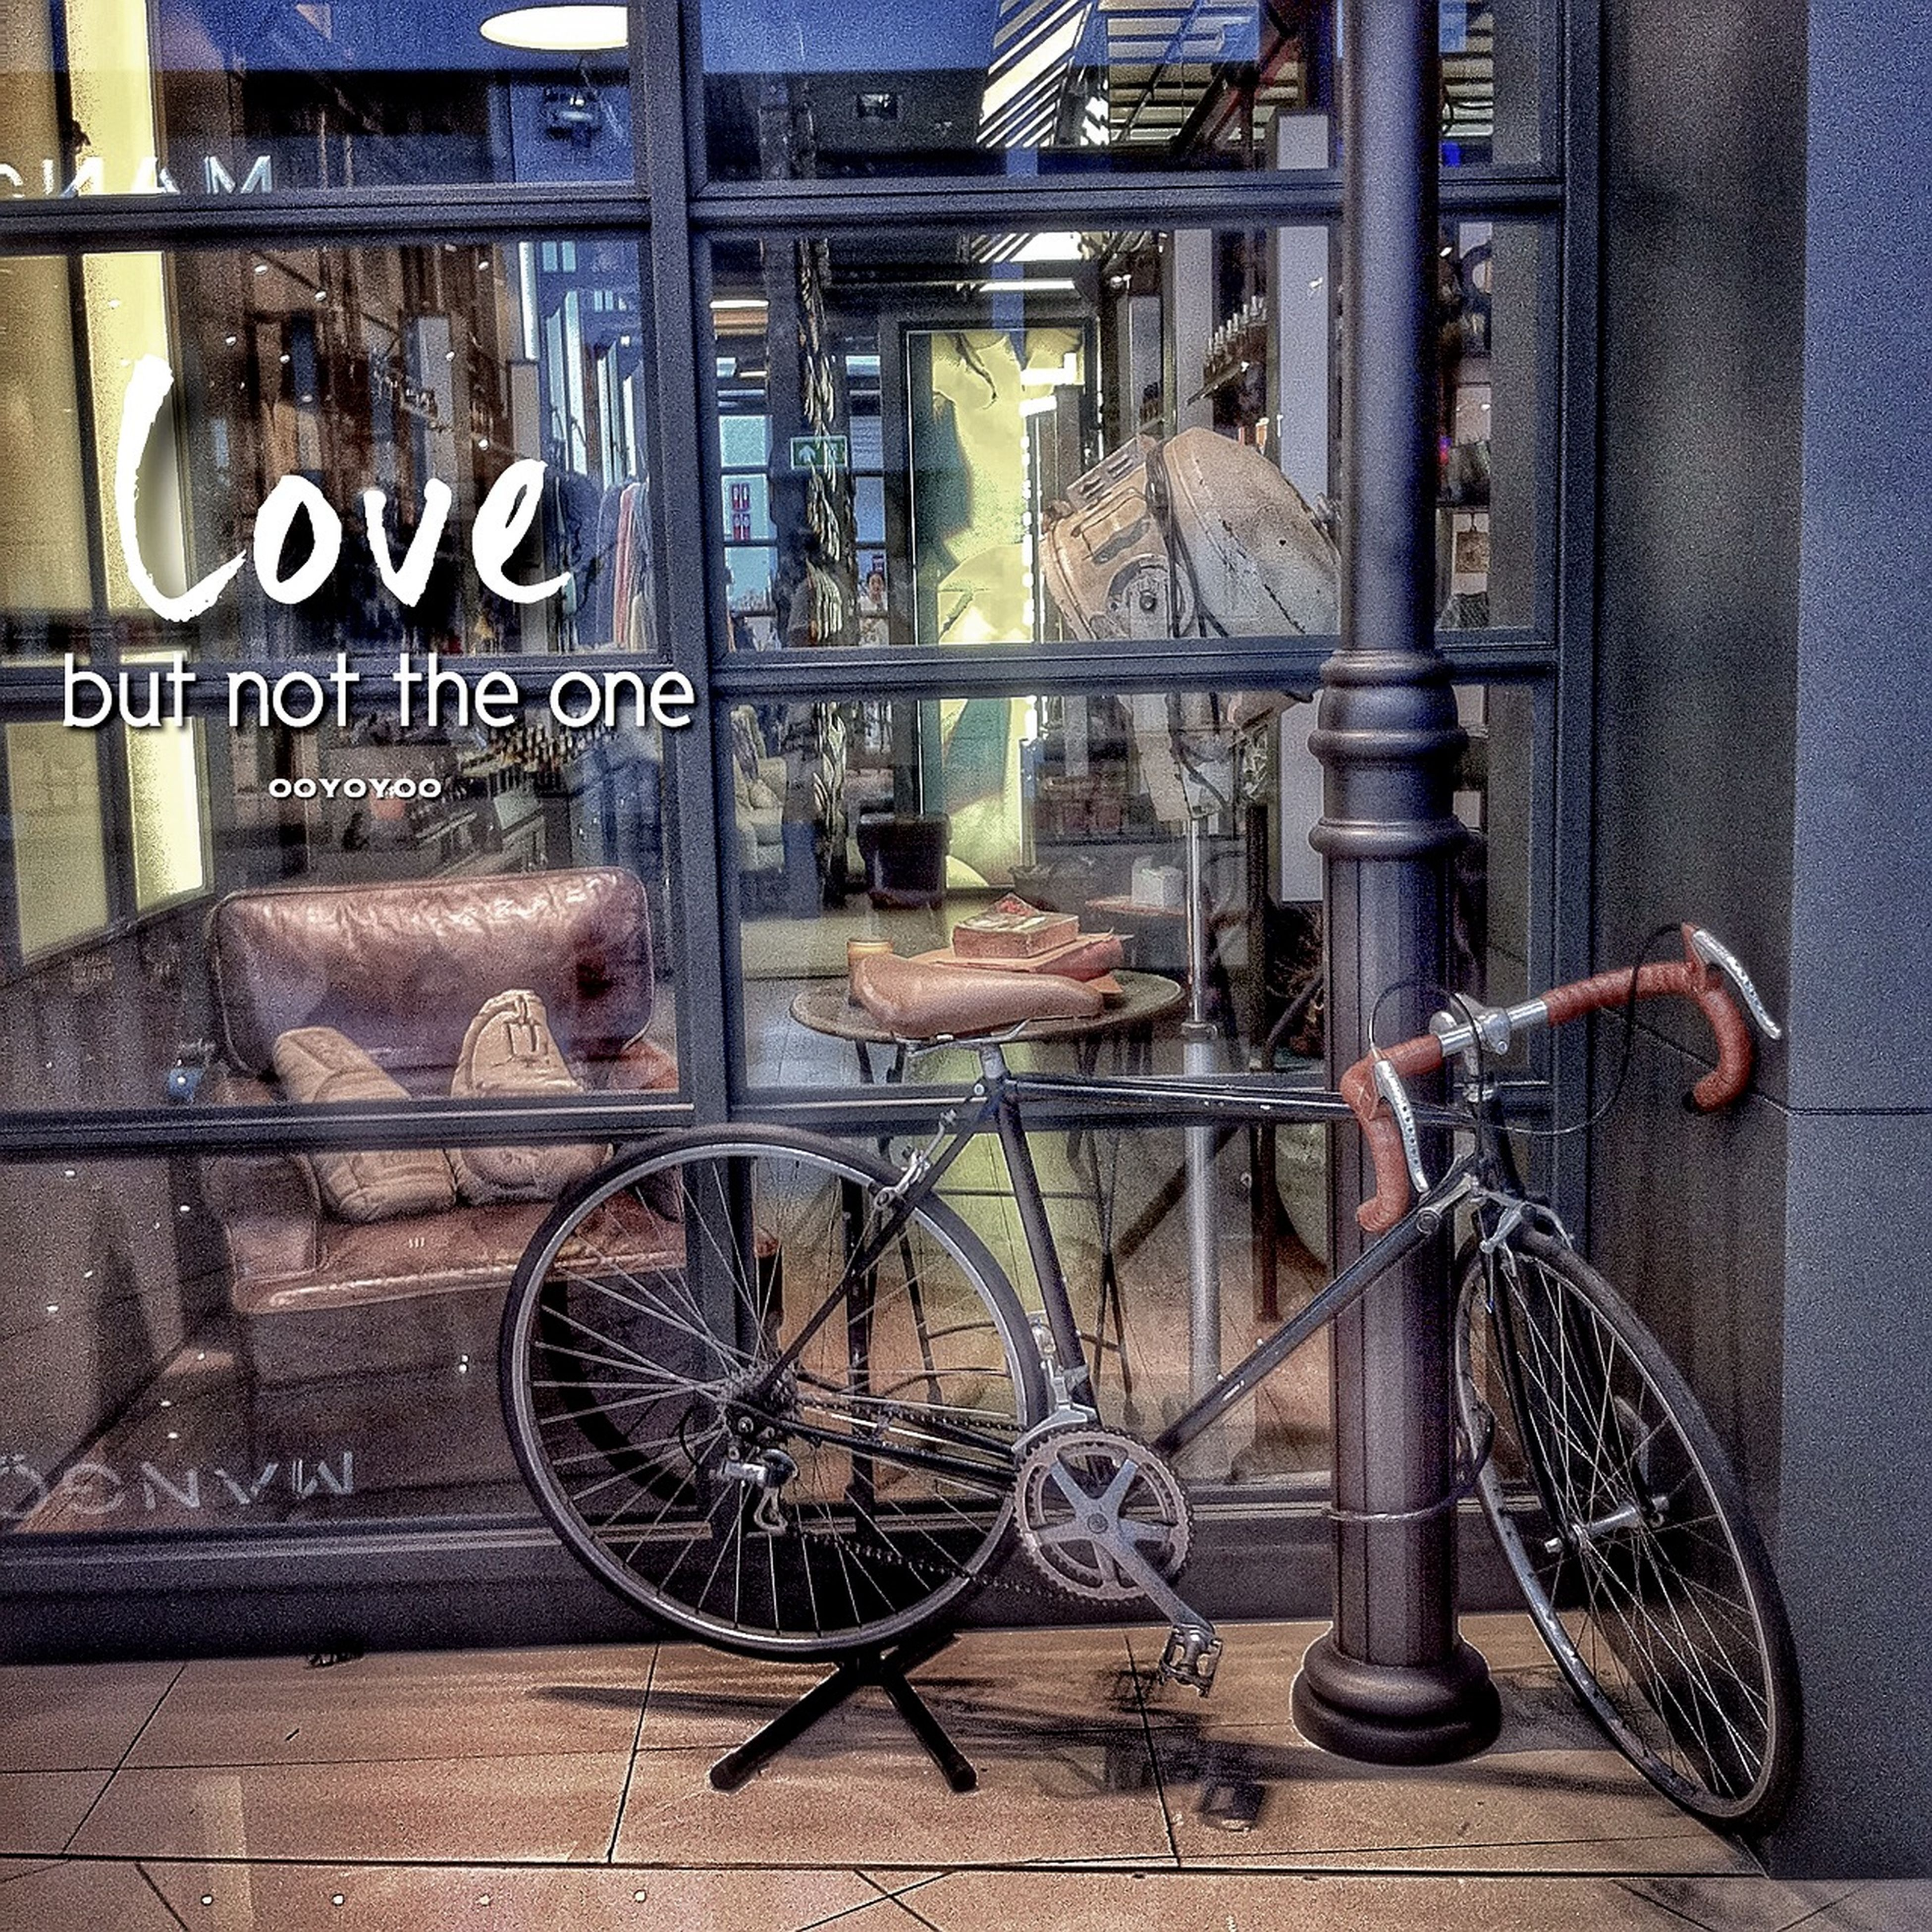 bicycle, stationary, architecture, built structure, parked, building exterior, parking, wall - building feature, mode of transport, window, transportation, land vehicle, house, wall, no people, day, indoors, sidewalk, door